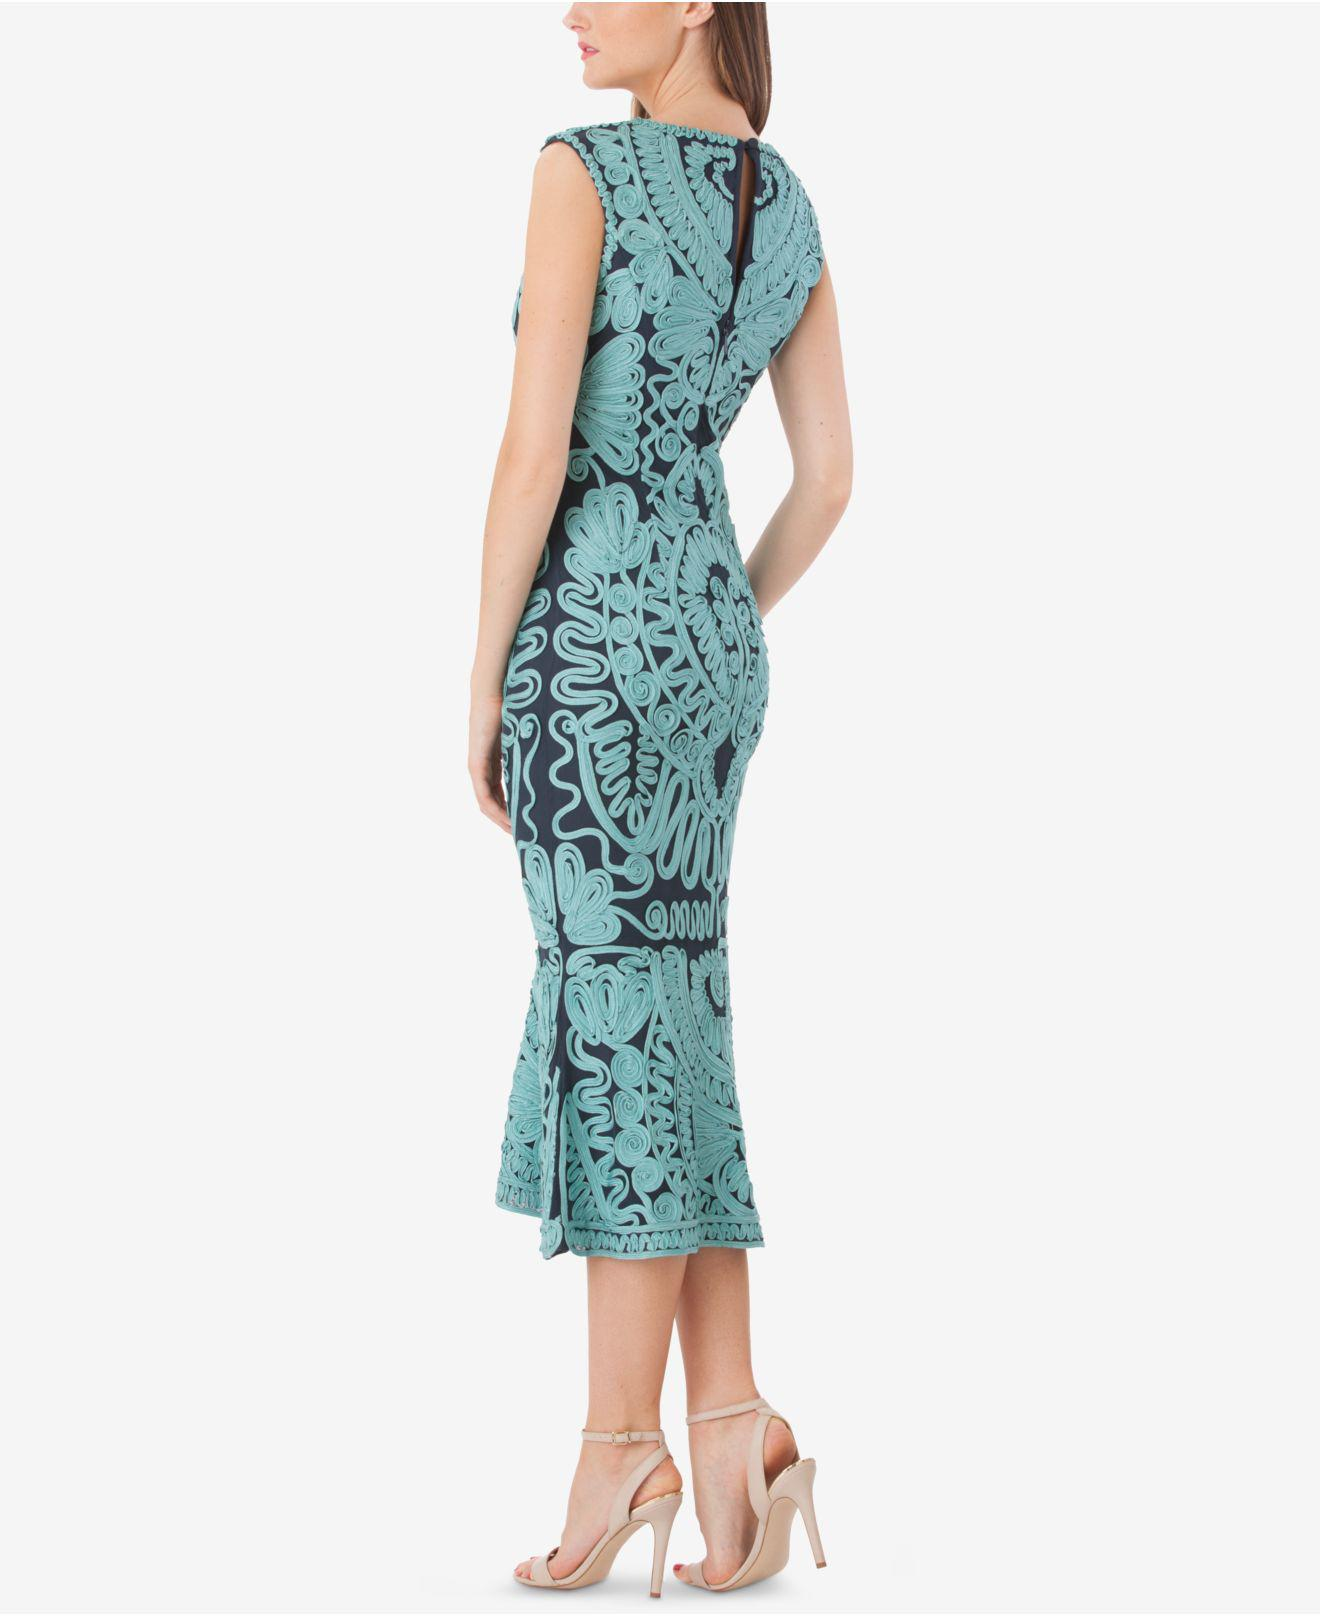 Lyst - Js Collections Embroidered Soutache Midi Dress in Green